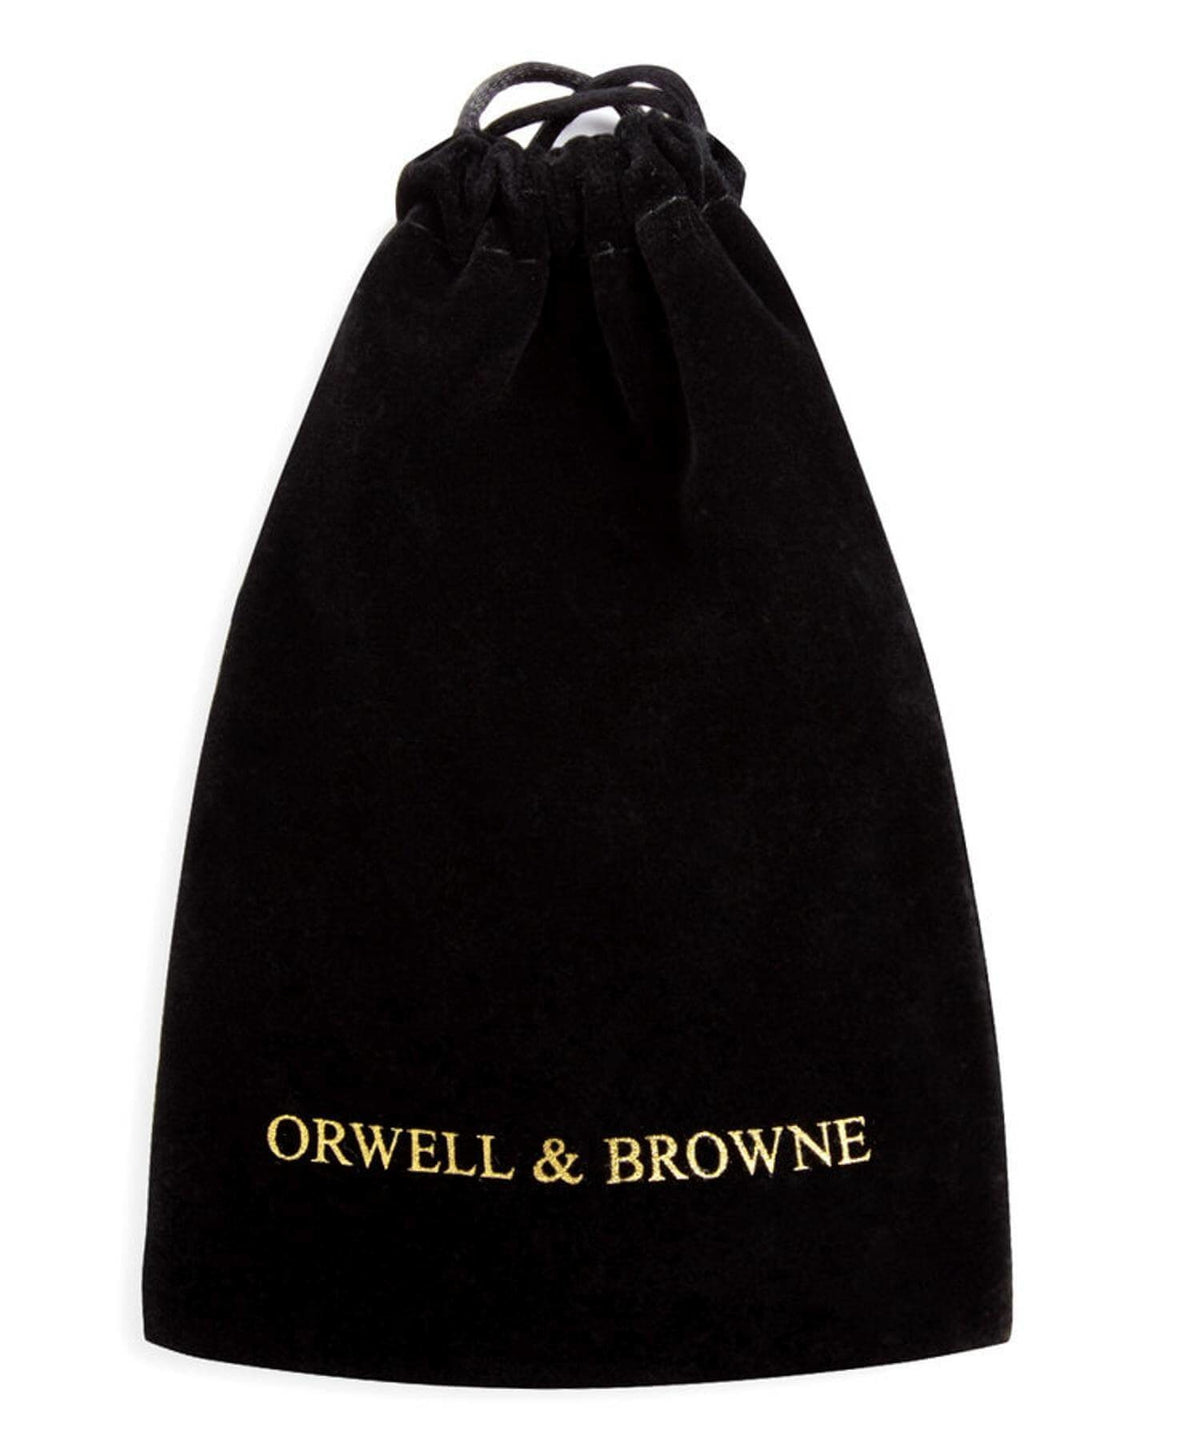 Donegal Tweed Pocket Square - Freckled Sod Orwell & Browne Mens Caps Hats Scarves Gloves